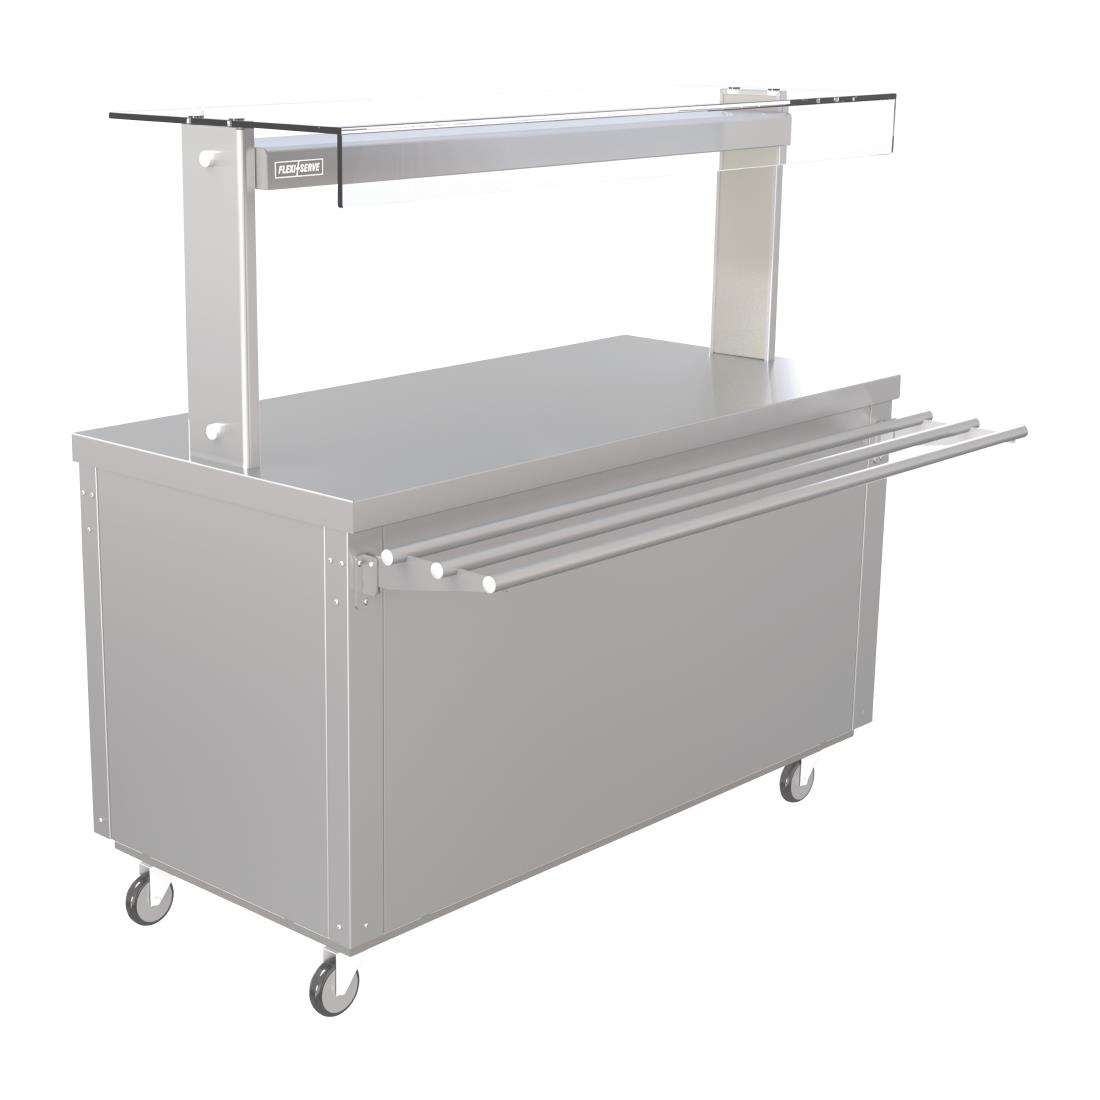 Image of Parry Ambient Buffet Bar with Chilled Cupboard 1495mm FS-A4PACK